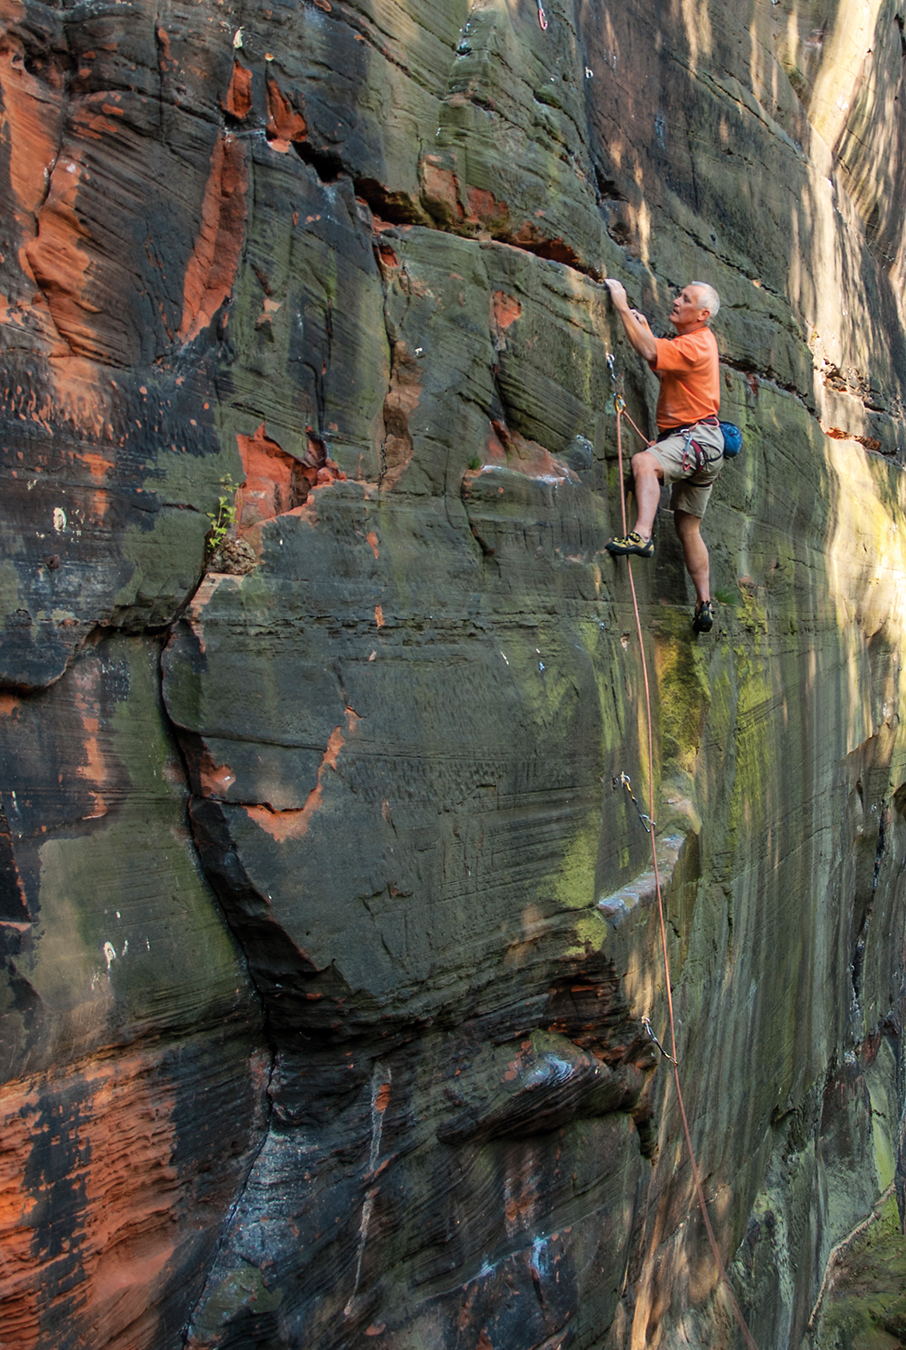 Mark Hounslea climbing The Flying School (F6c+) at Frogsmouth Quarry. Photo: Paul Evans